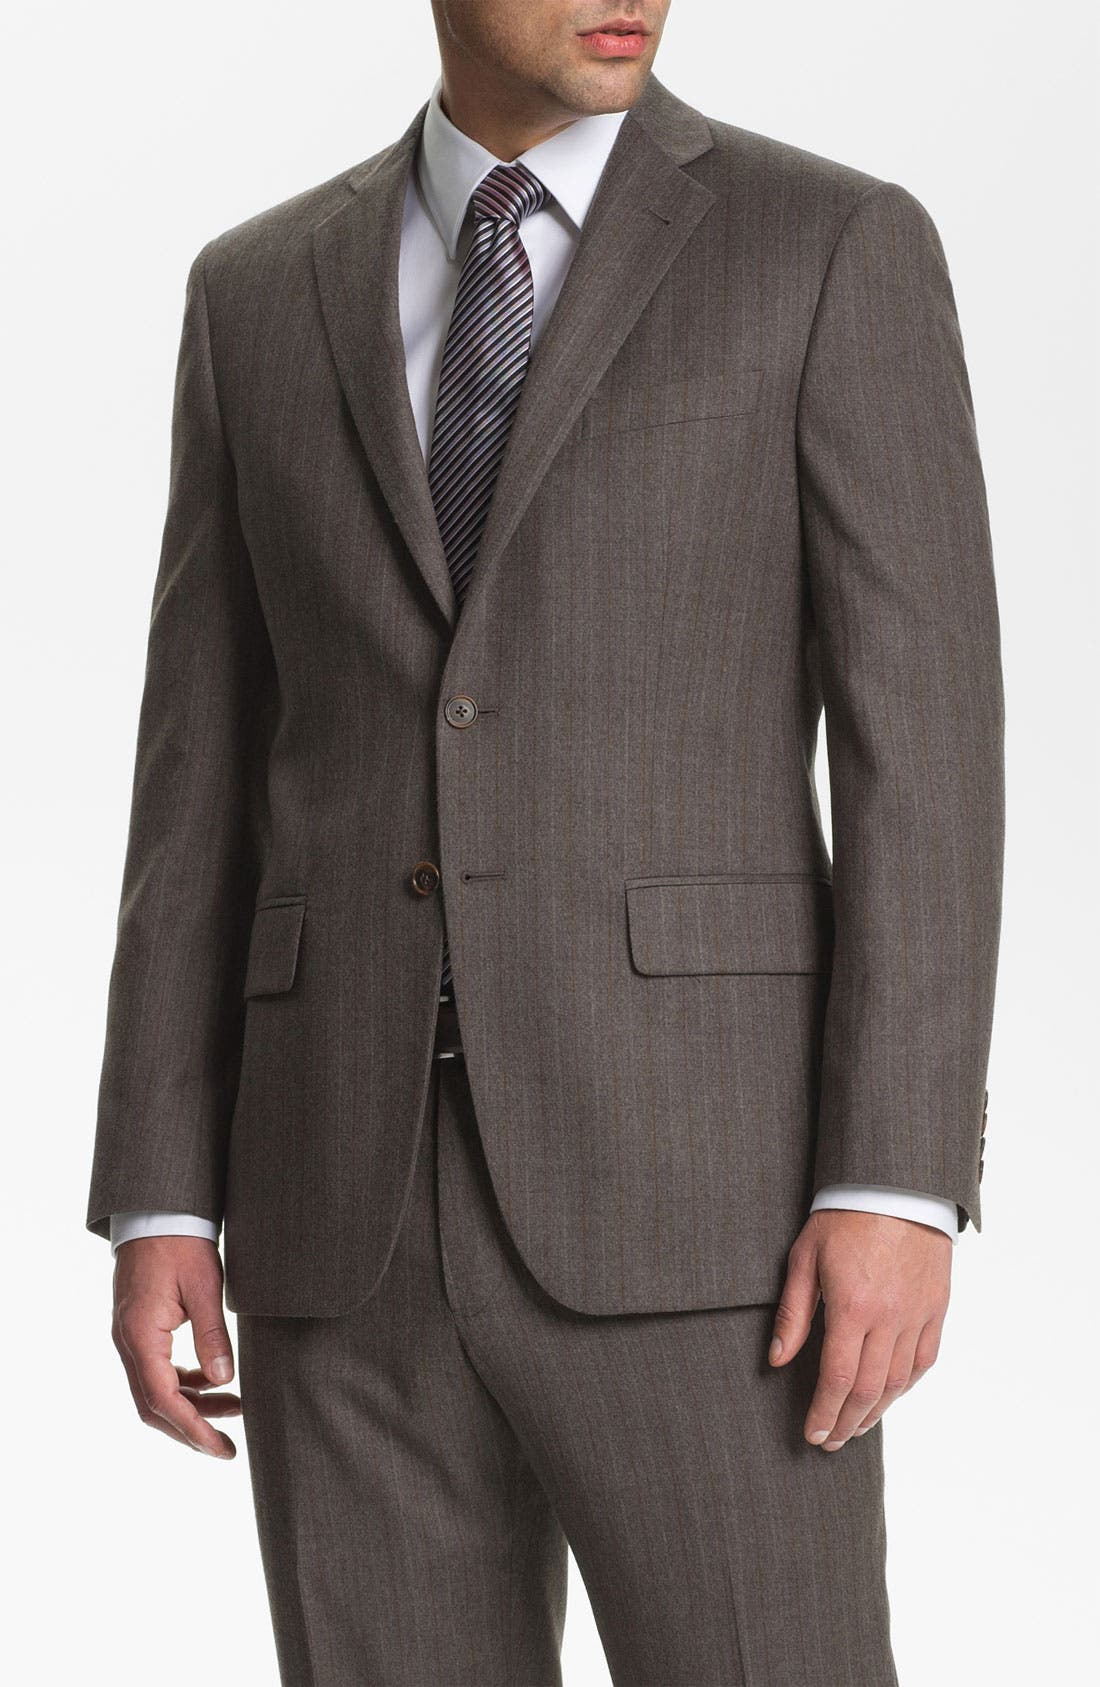 Alternate Image 1 Selected - Joseph Abboud 'Profile' Trim Fit Stripe Suit